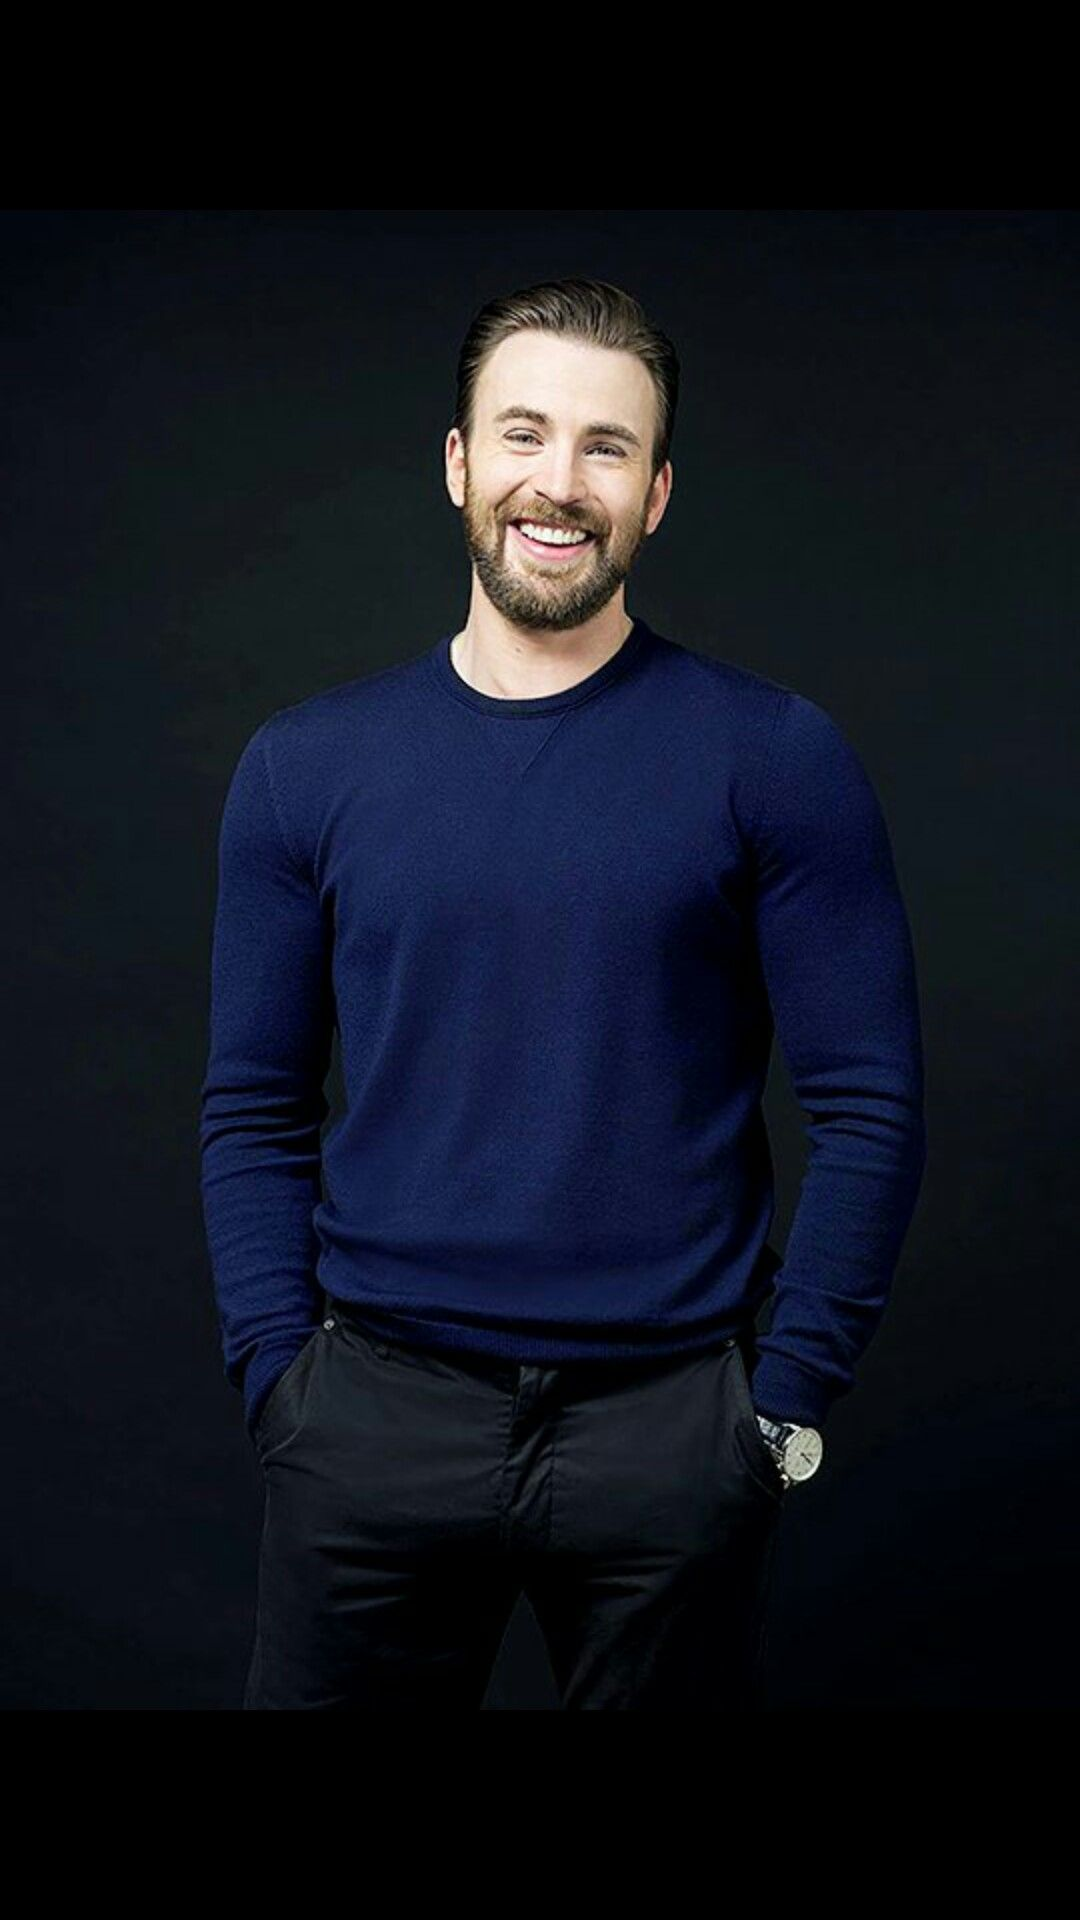 Chris Evans, Pictures, Fandom, Cap, Baseball Cap, Photos, Fandoms, Clip Art